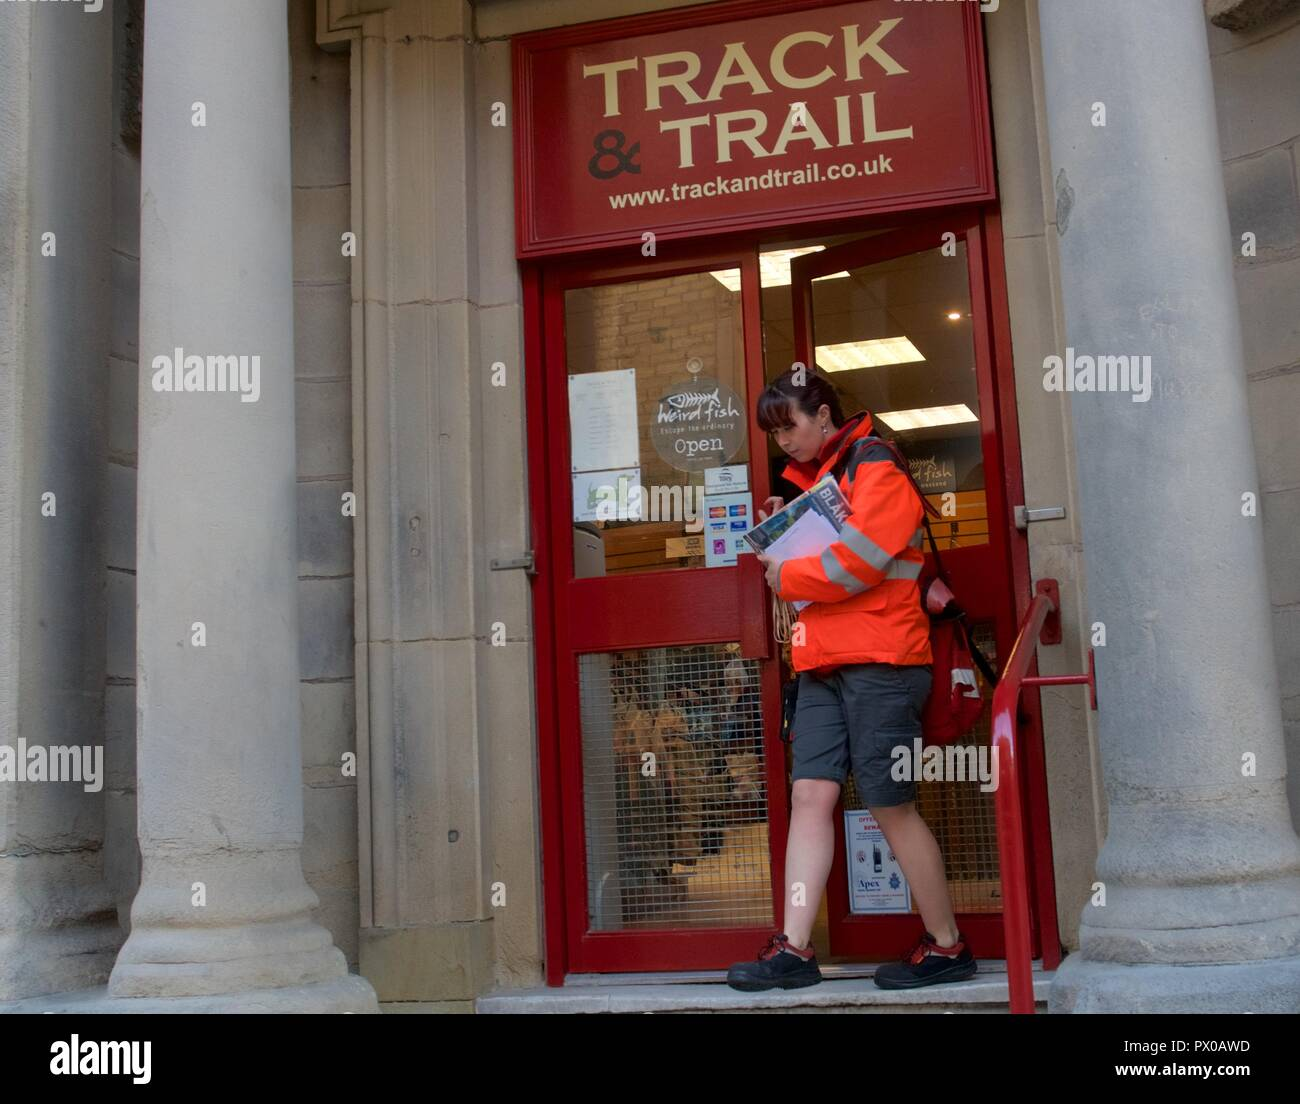 A postal worker leave a business after delivering mail.in Buxton, Derbyshire,  UK - Stock Image